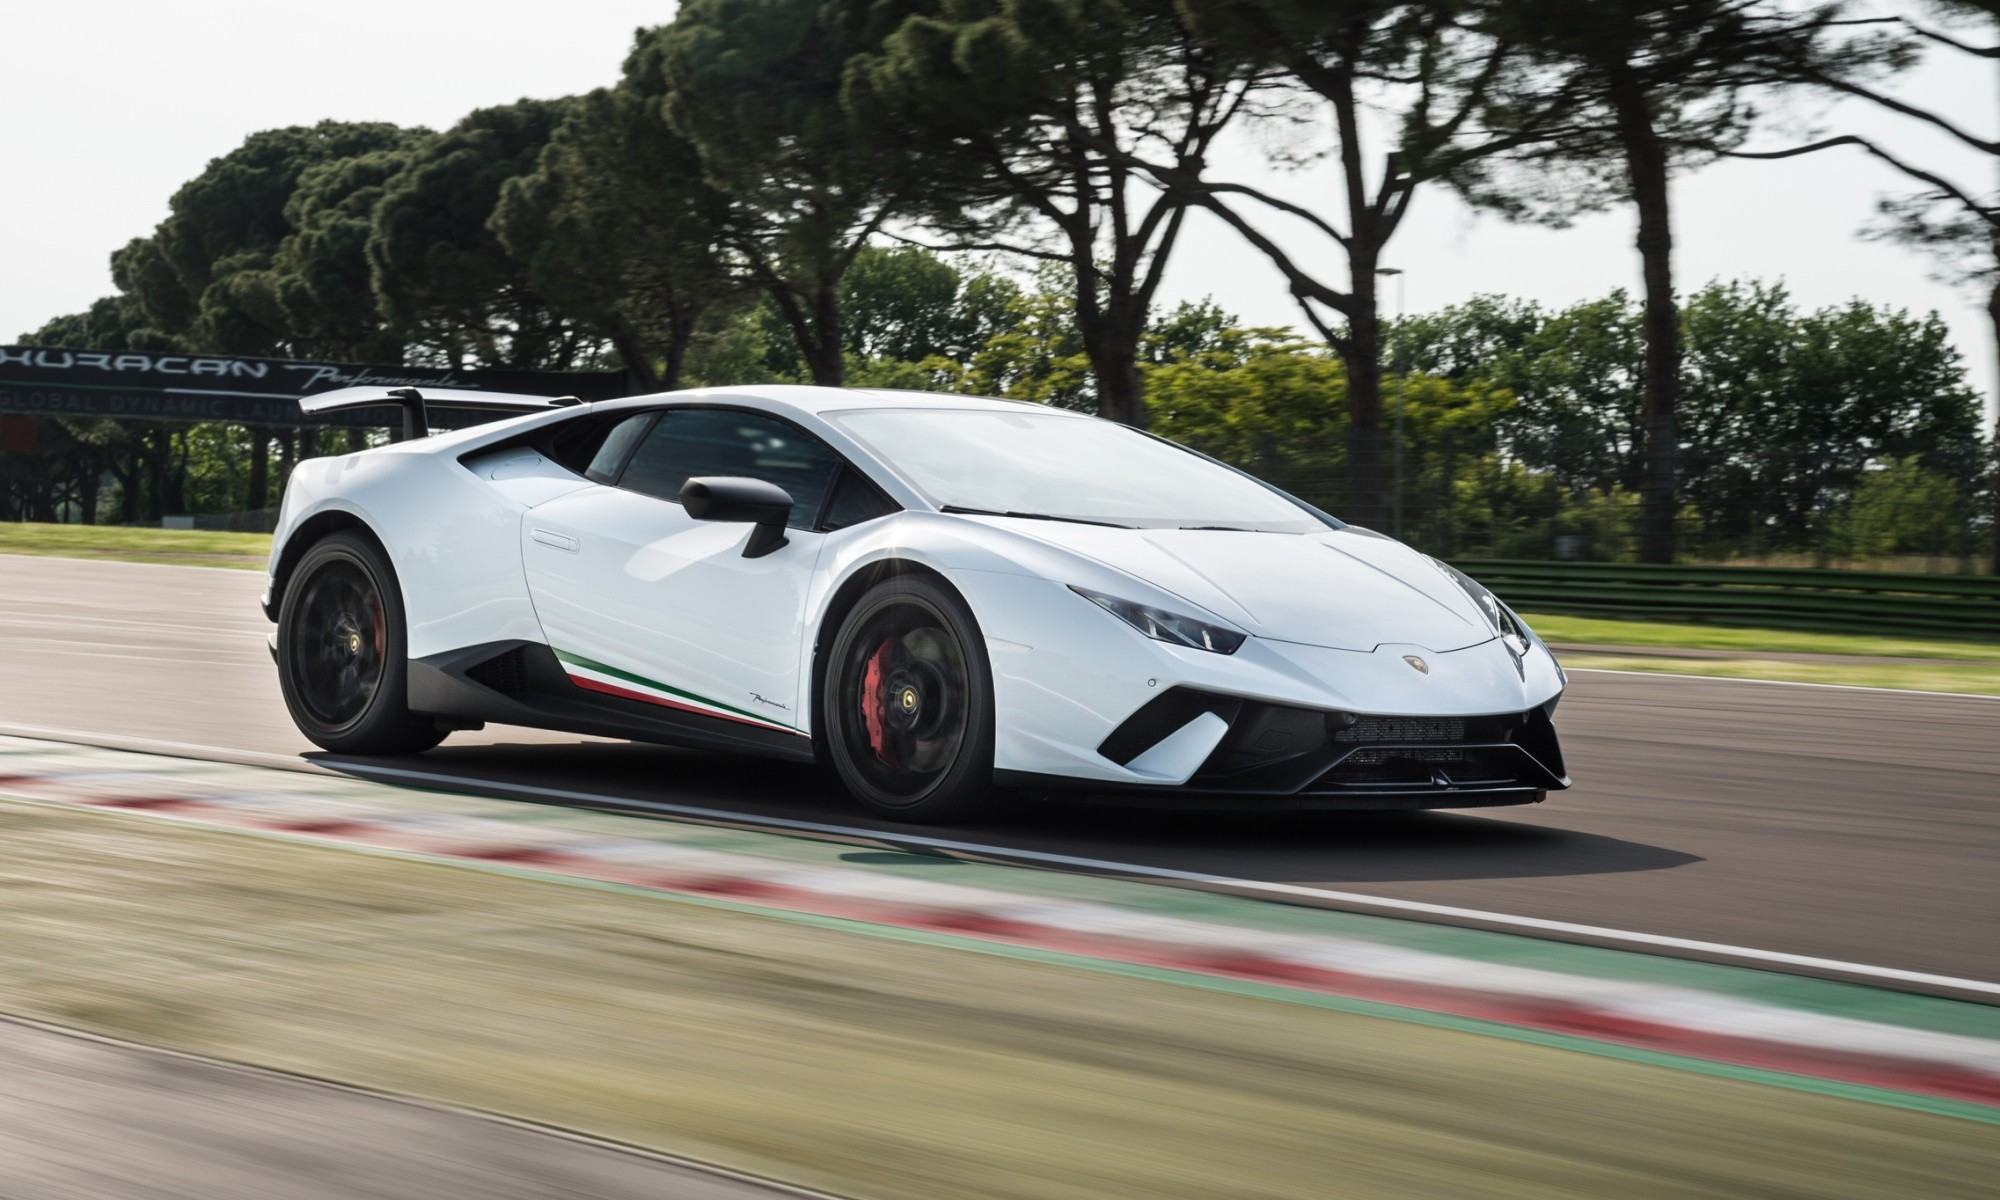 Lamborghini Huracan Performante on track